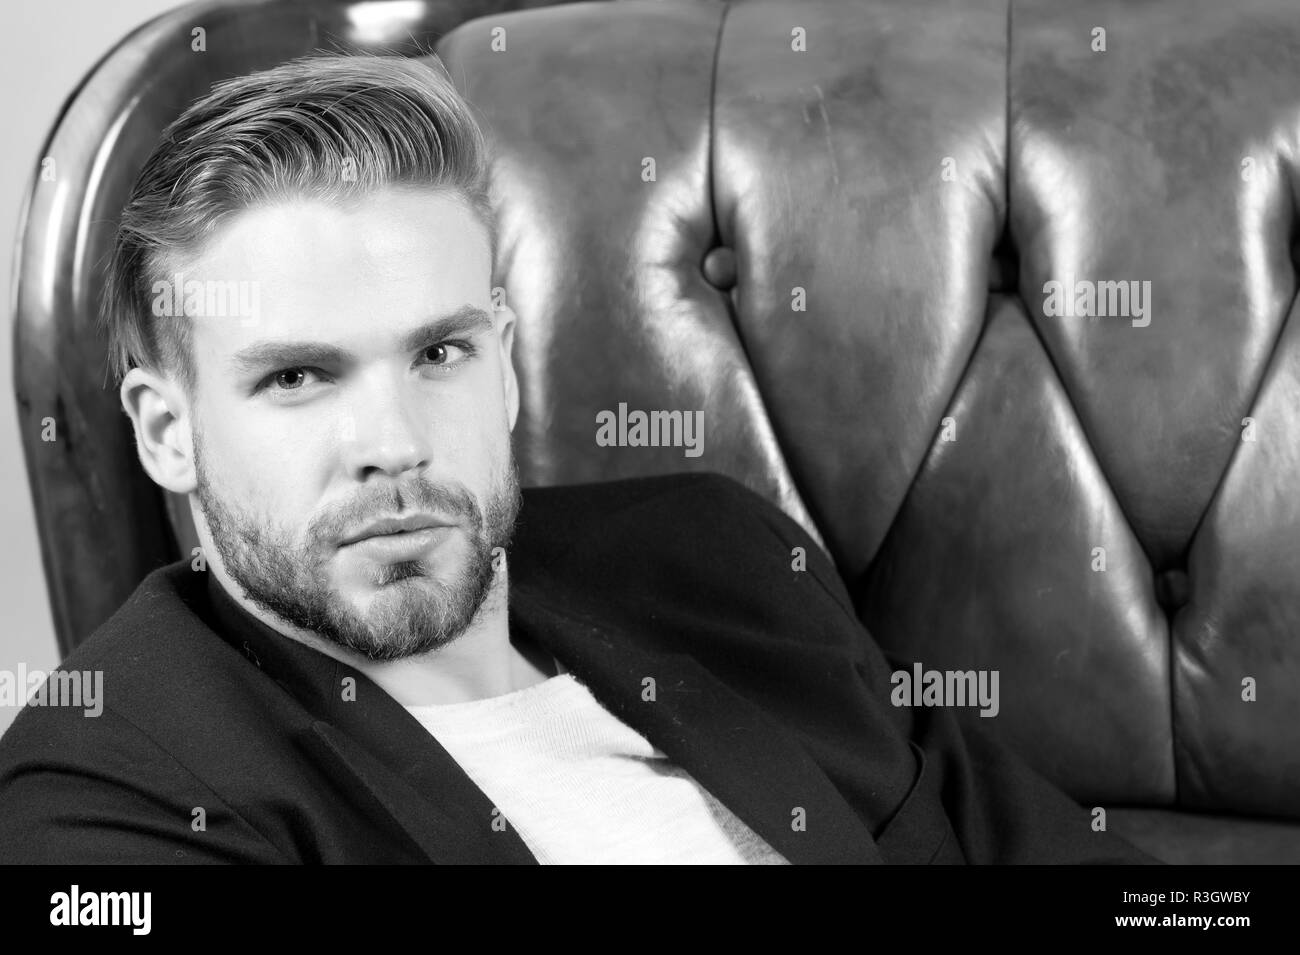 Macho sit in brown leather armchair. Man with unshaven face, blond hair, haircut beauty. Barber salon, barbershop. Beauty, grooming fashion. Confident - Stock Image